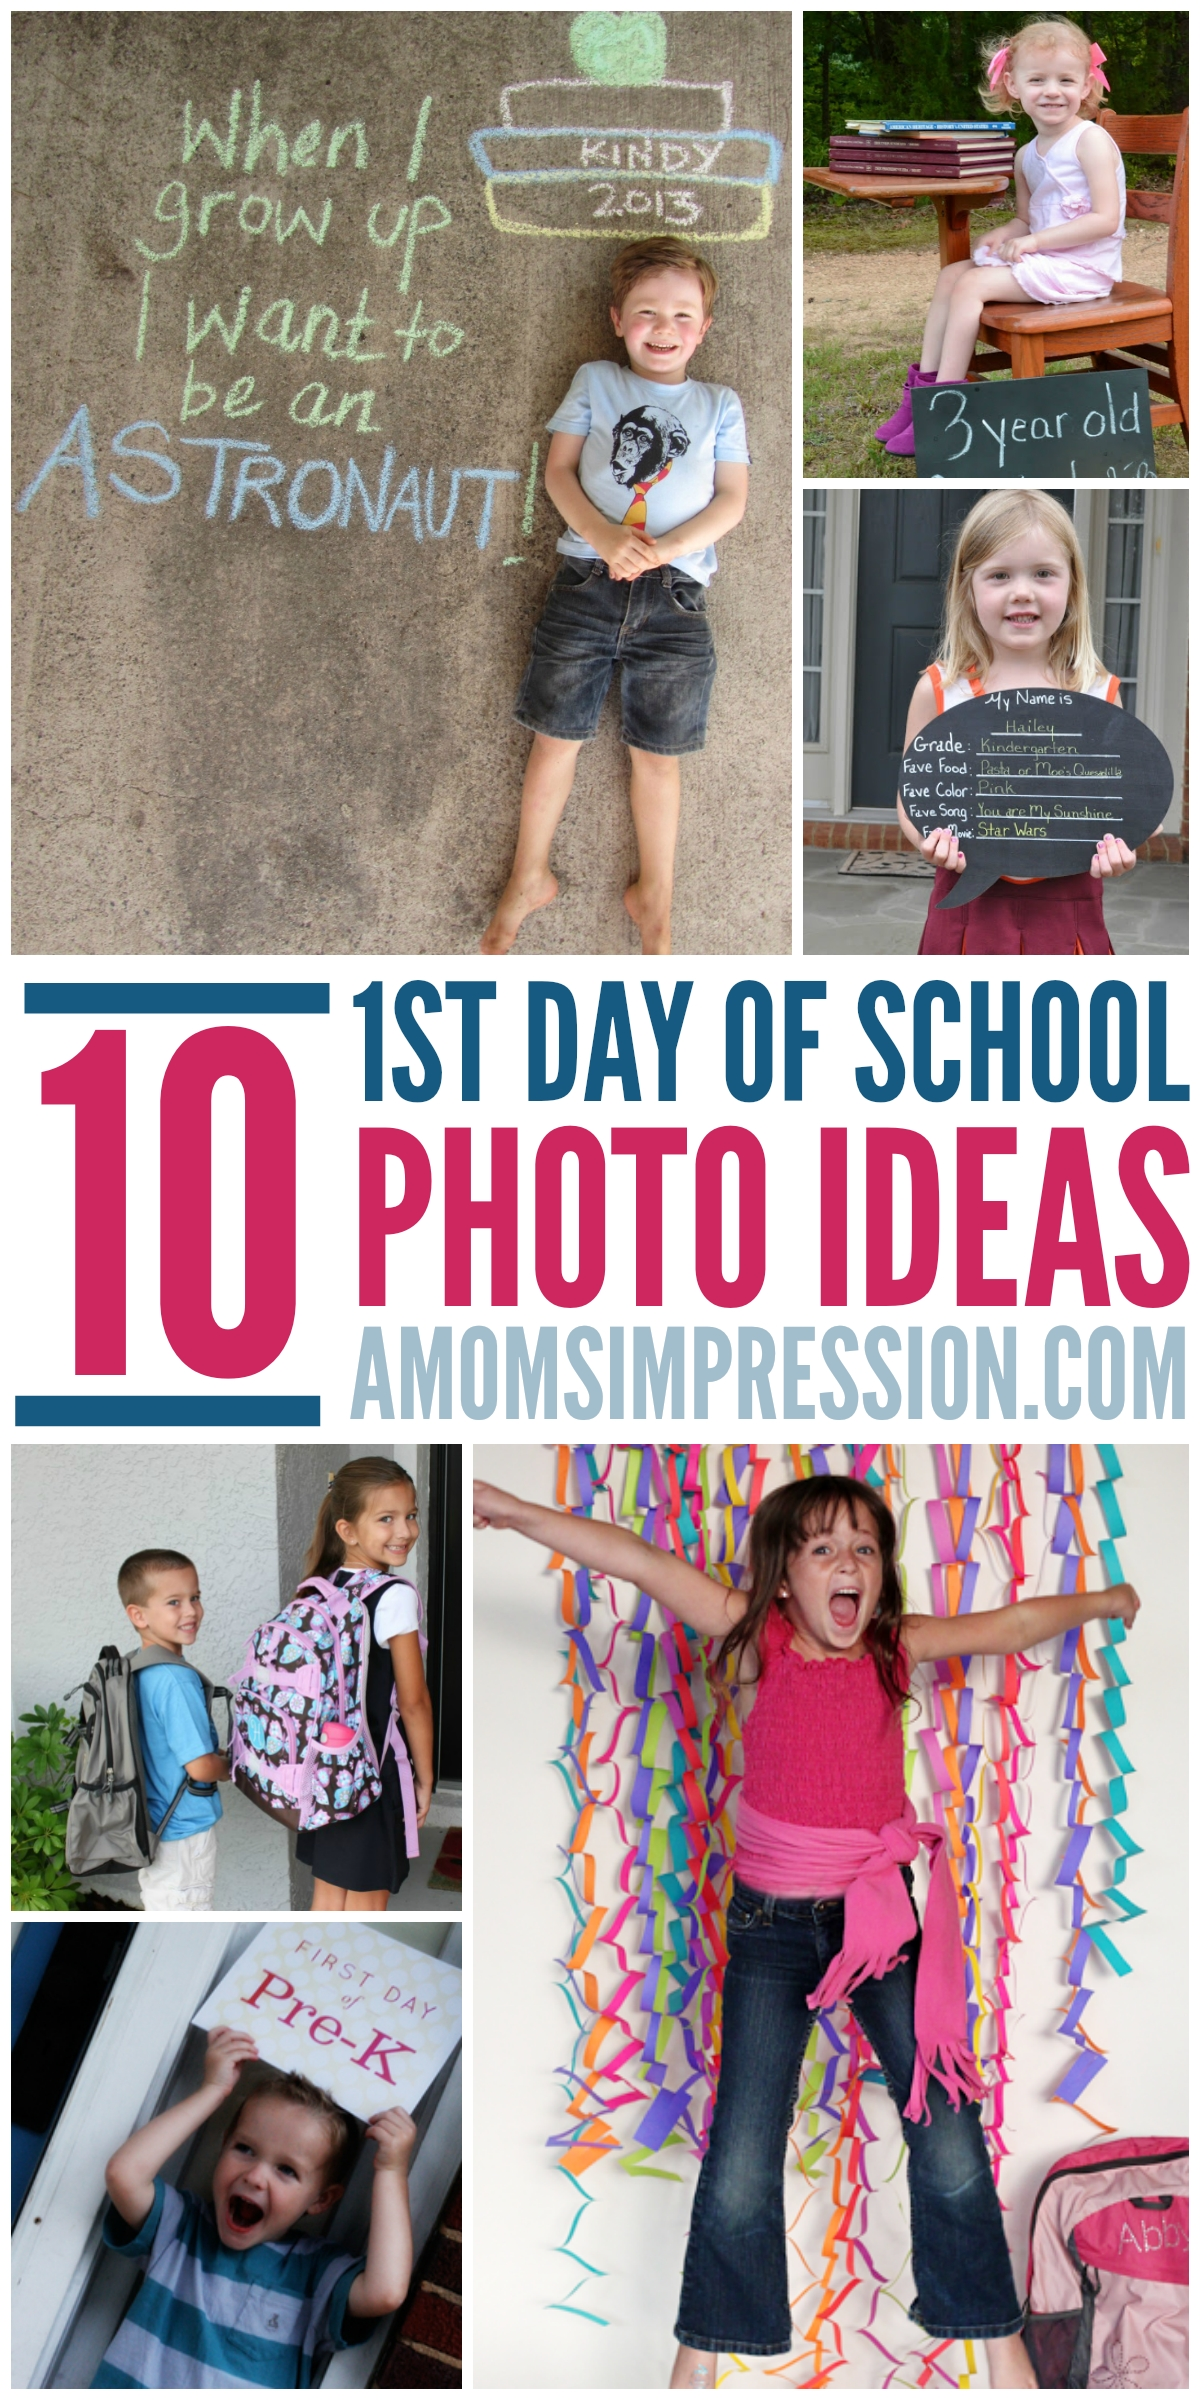 10 Most Popular Ideas For First Day Of School 10 fun photo ideas for the 1st day of school parents love to 4 2021